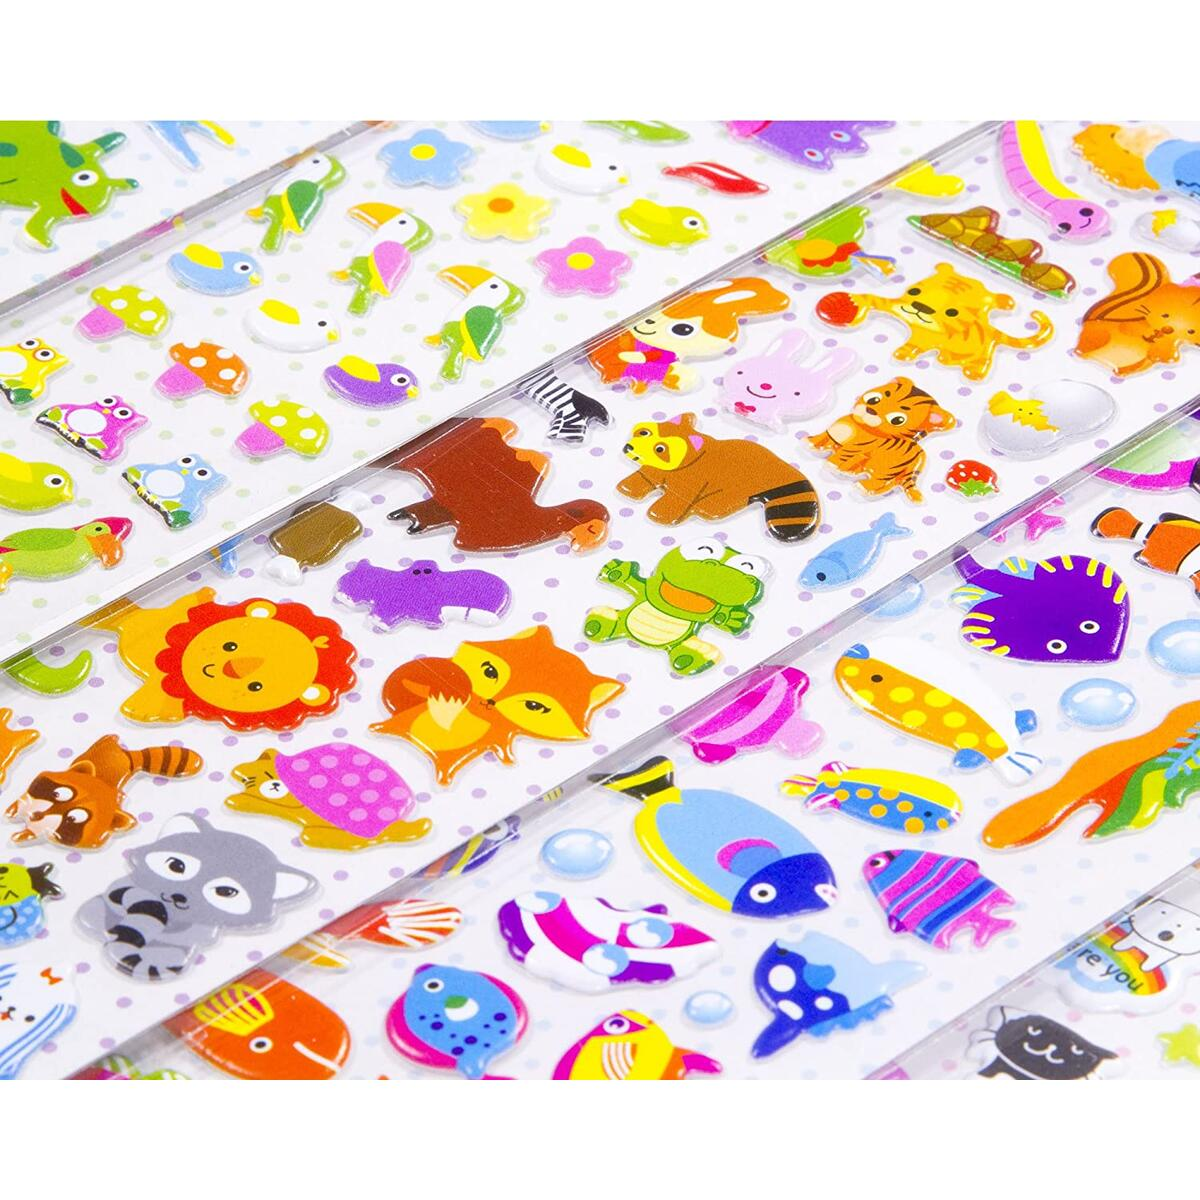 Stickers for Kids - 1200+ 3D Puffy Stickers for Toddlers Children Teachers School Projects 20 Different Sticker Sheets